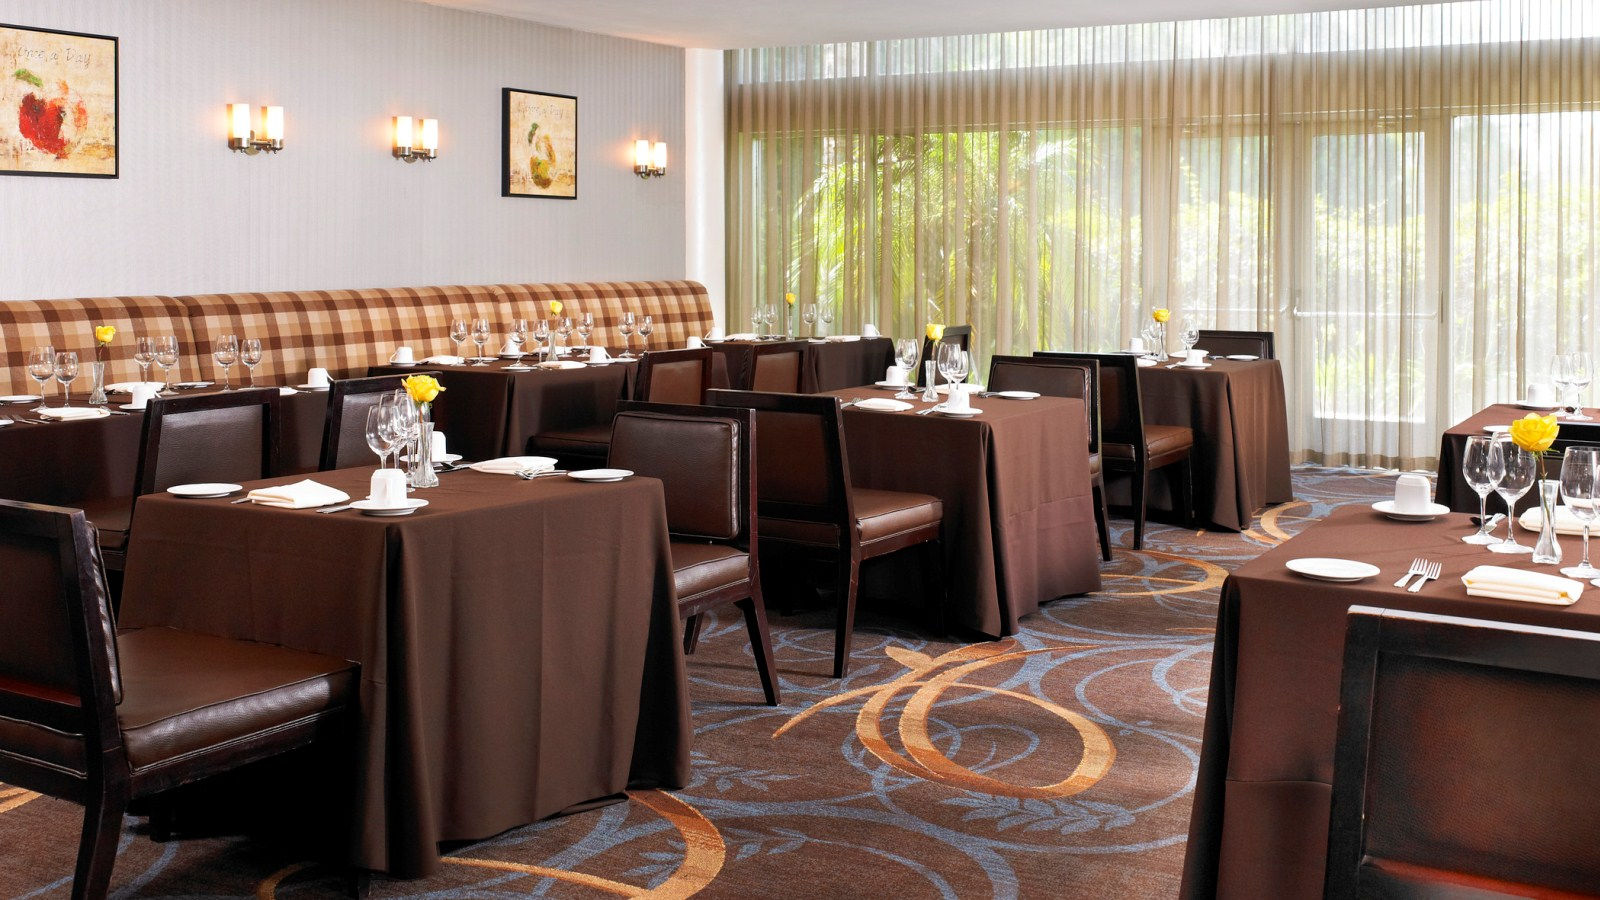 Ontario Meetings - The Orchid Restaurant Bar & Grill